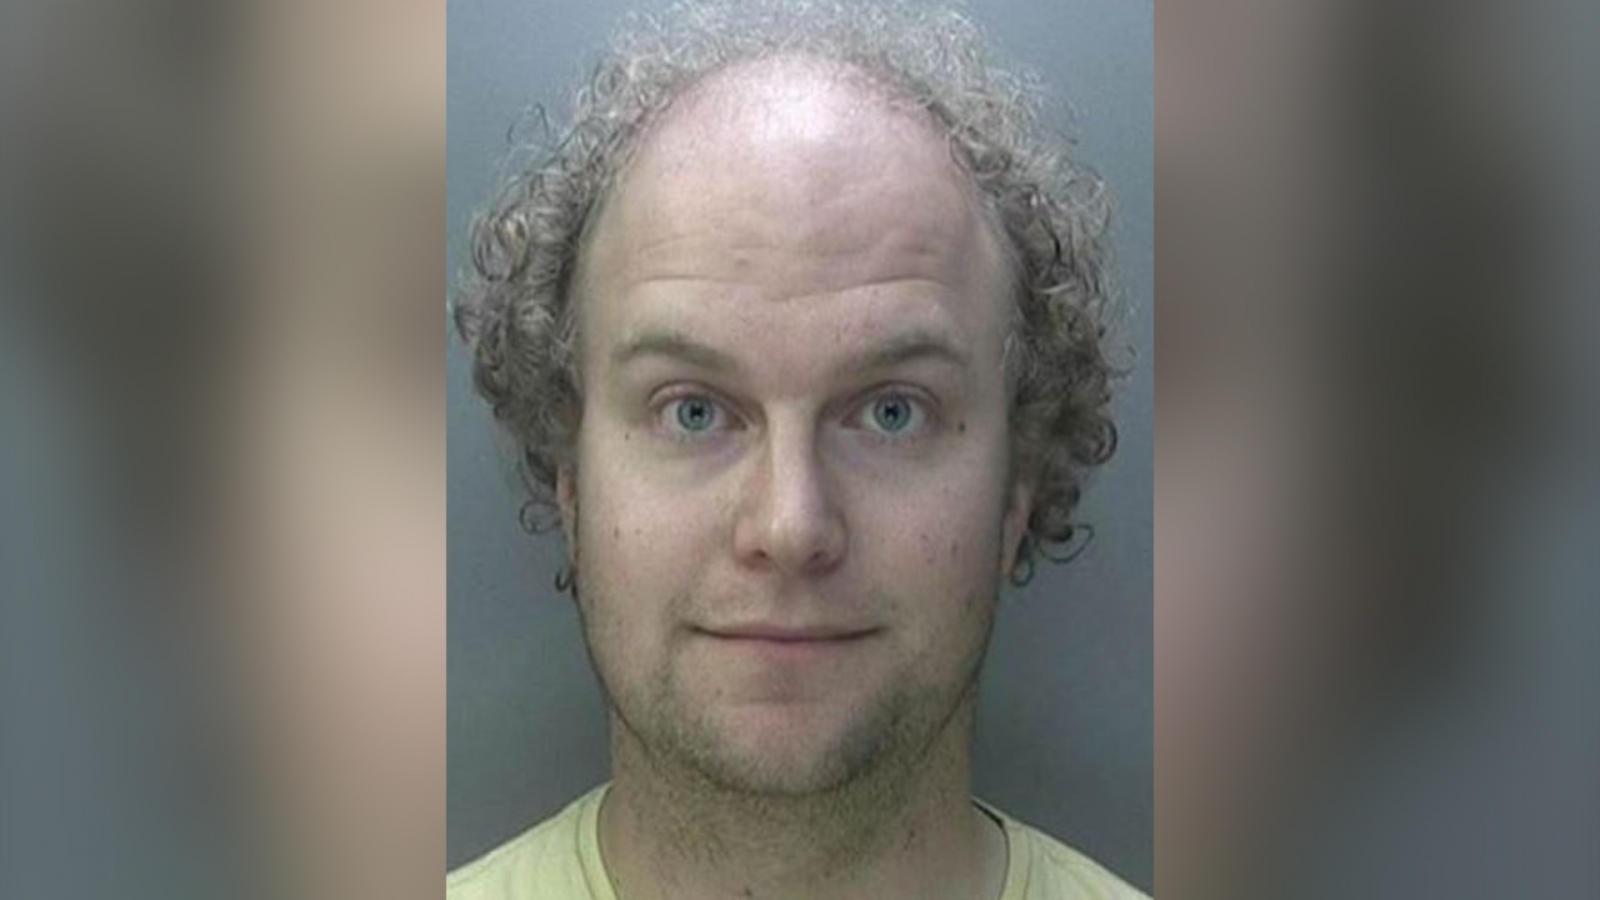 Depraved 'Hurtcore' University Academic Jailed For 38 Years